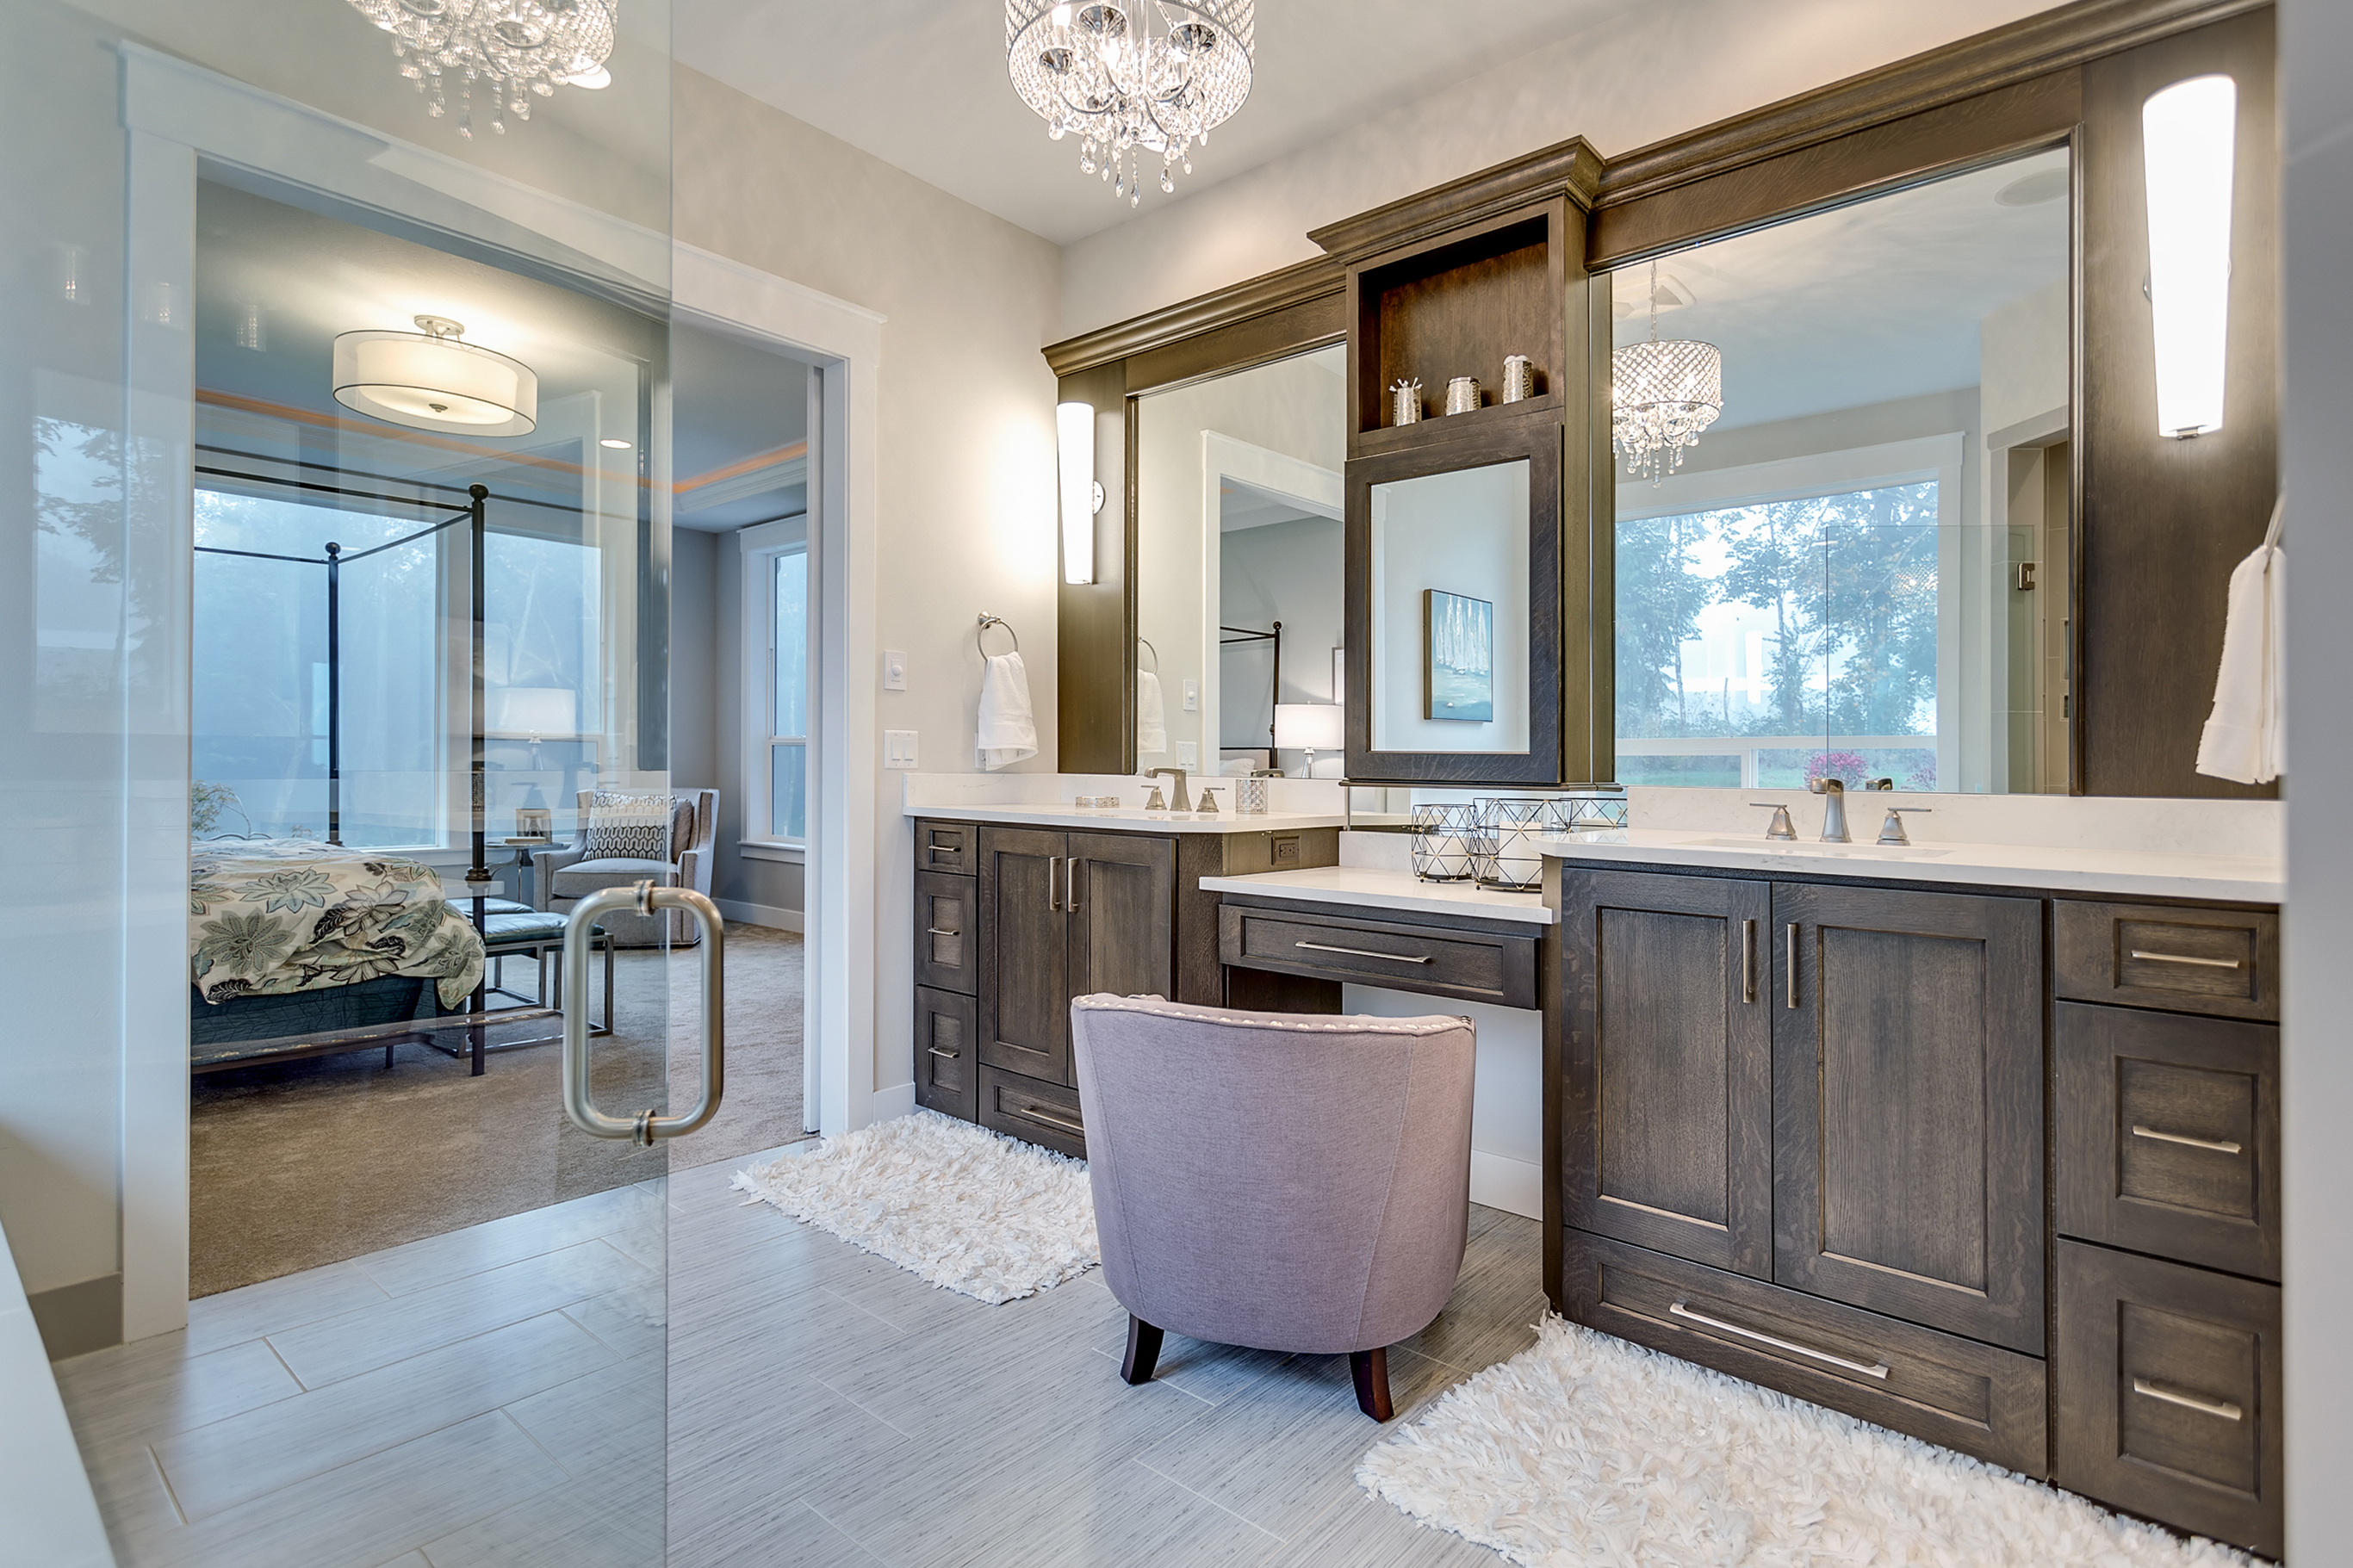 Master Bathroom Cabinetry